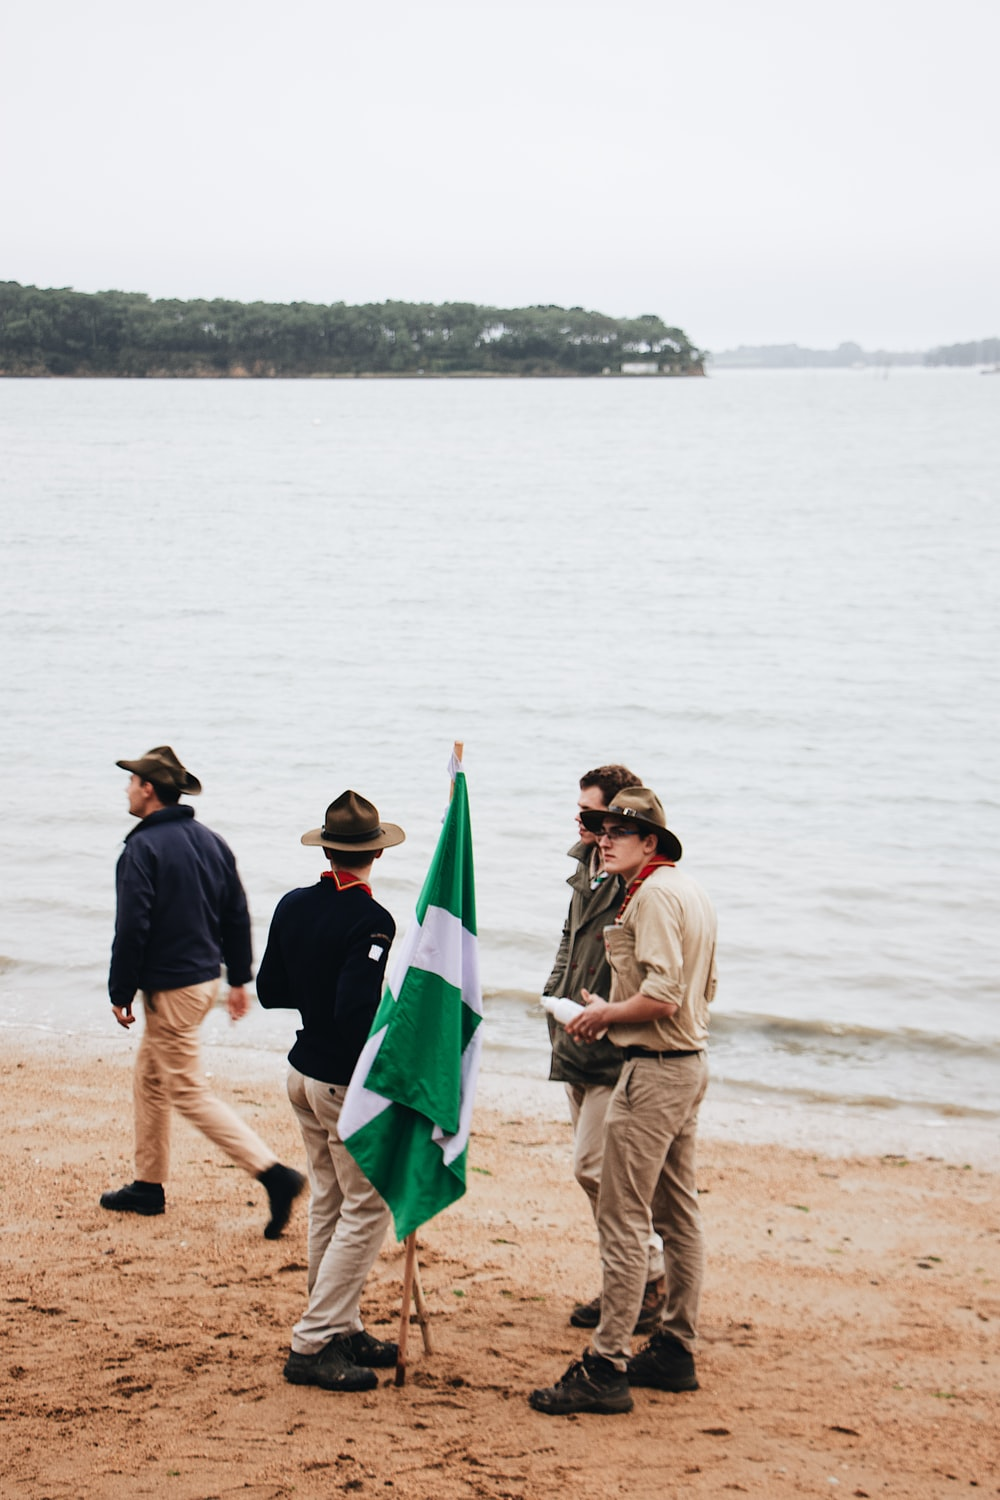 four men standing on shore near body of water